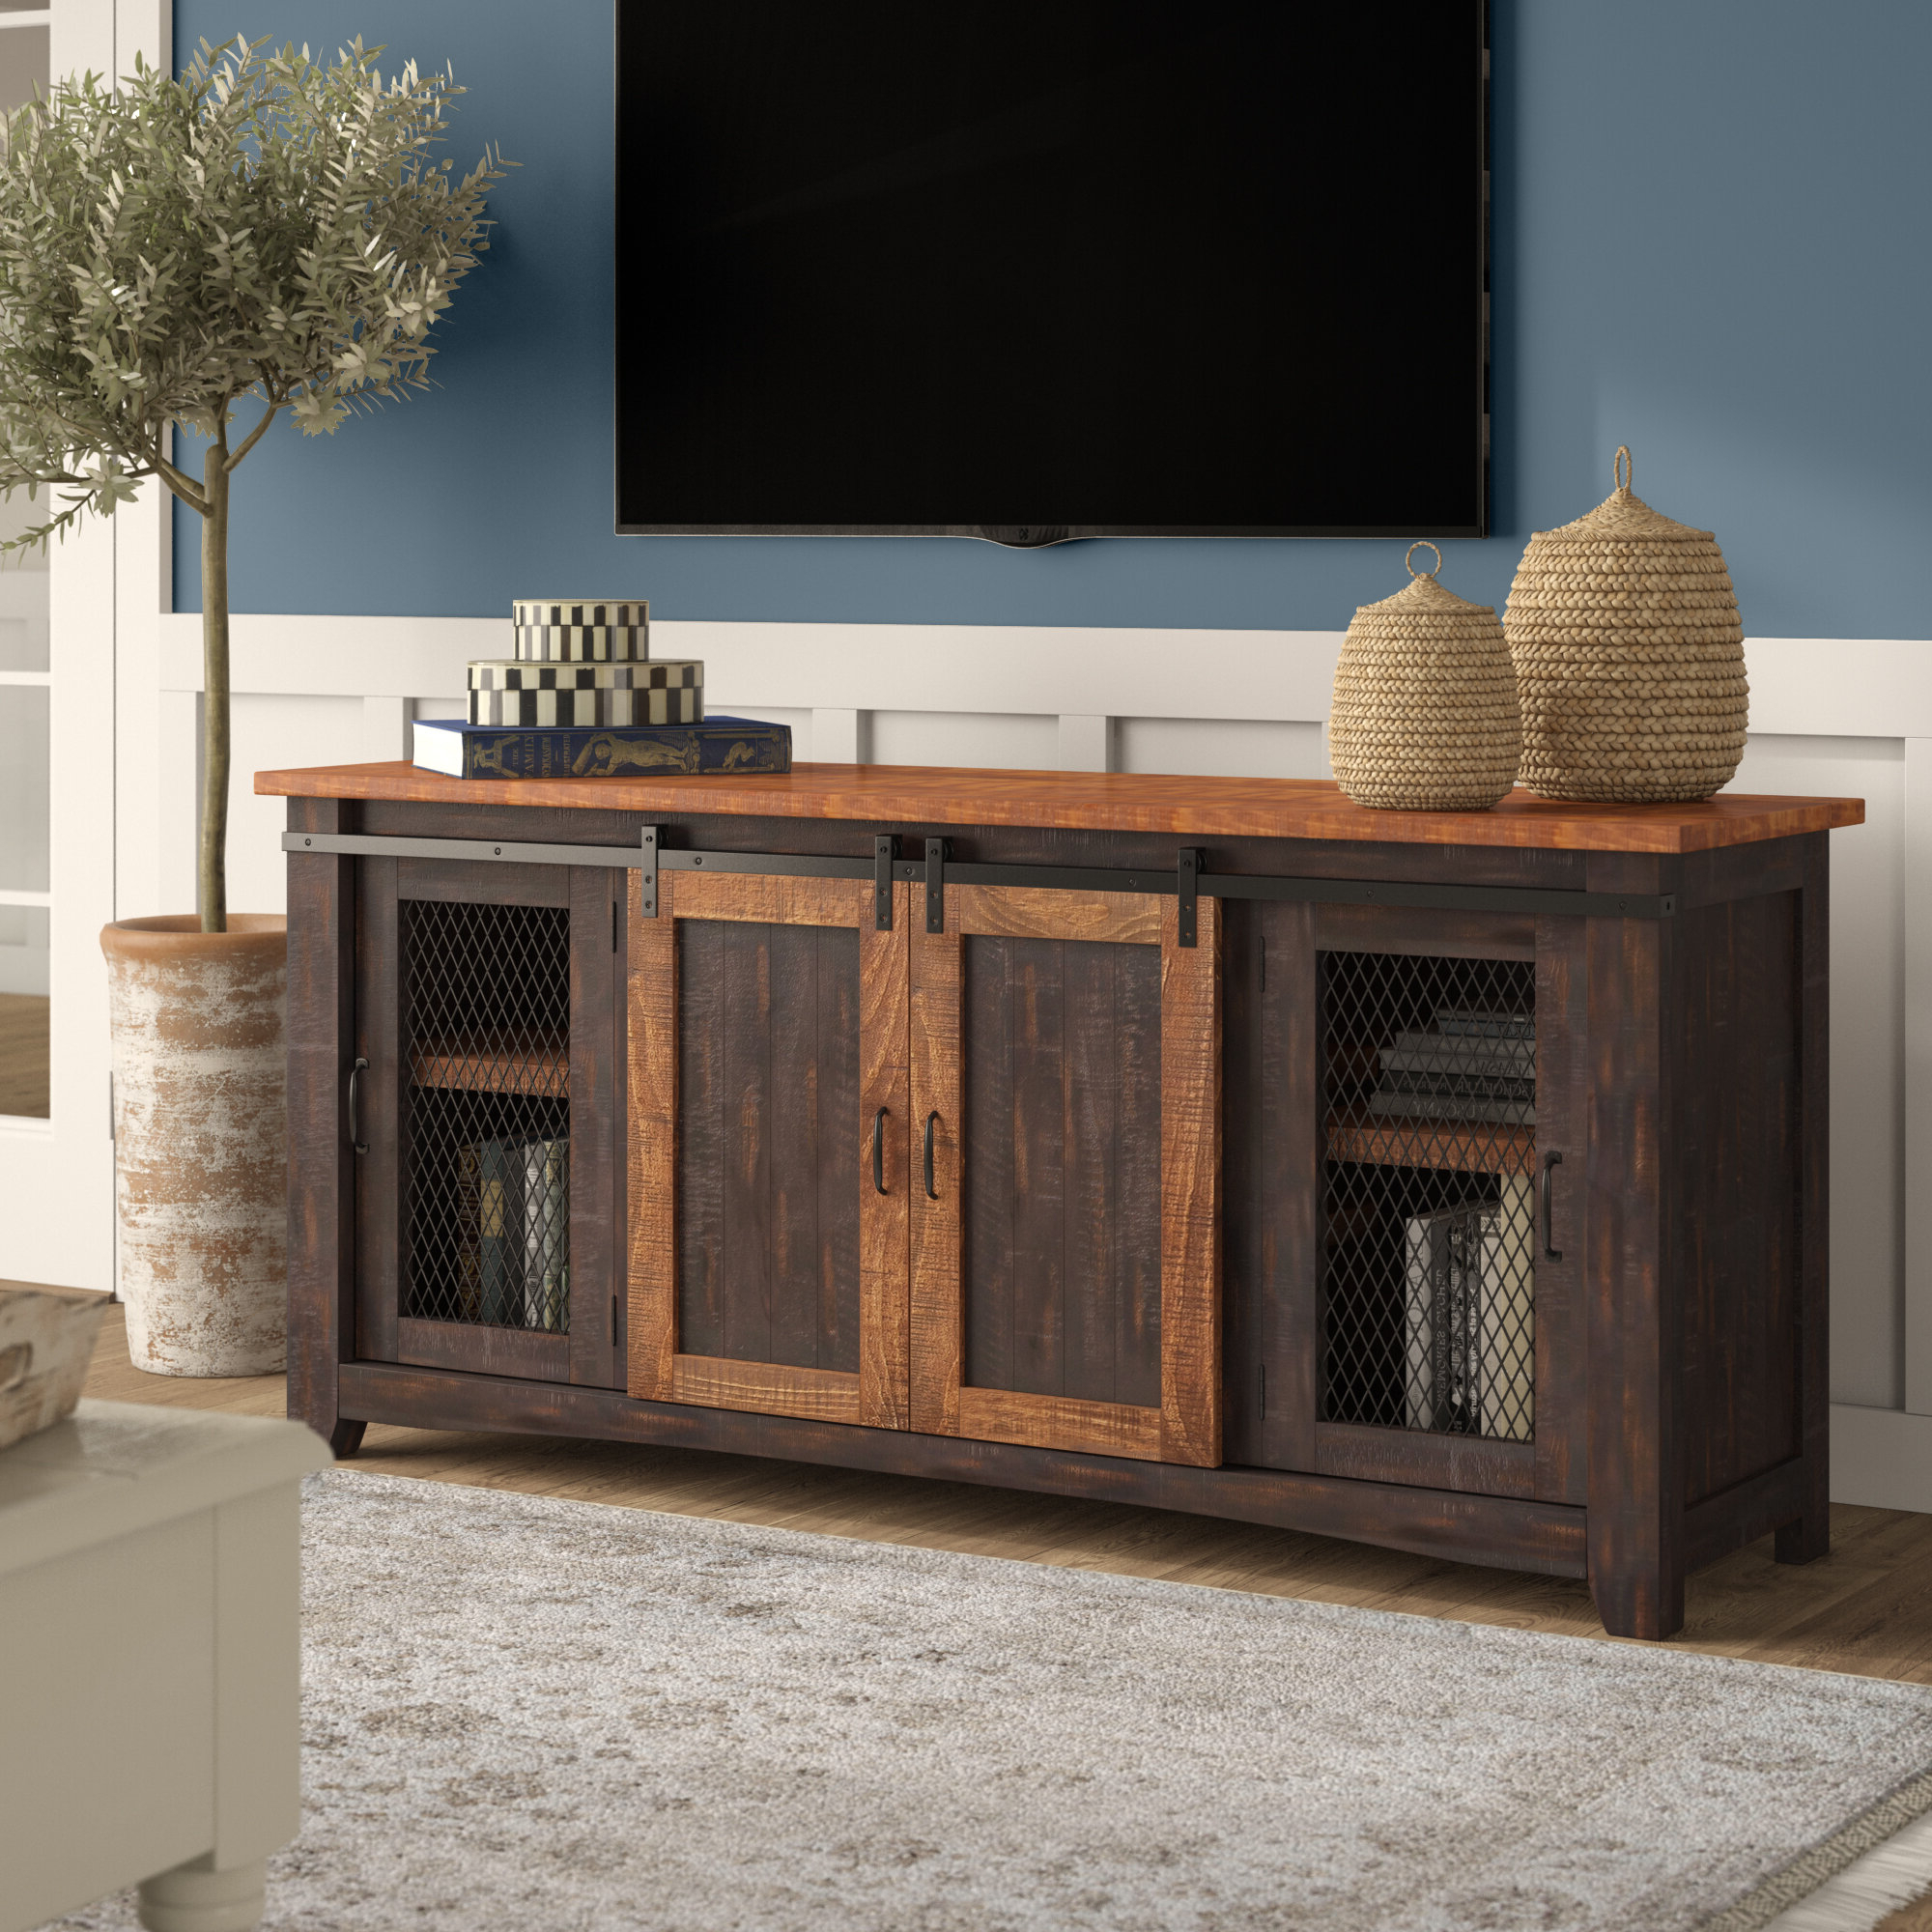 """2019 Gracie Oaks Belen Tv Stand For Tvs Up To 70"""" With Colefax Vintage Tv Stands For Tvs Up To 78"""" (View 1 of 20)"""